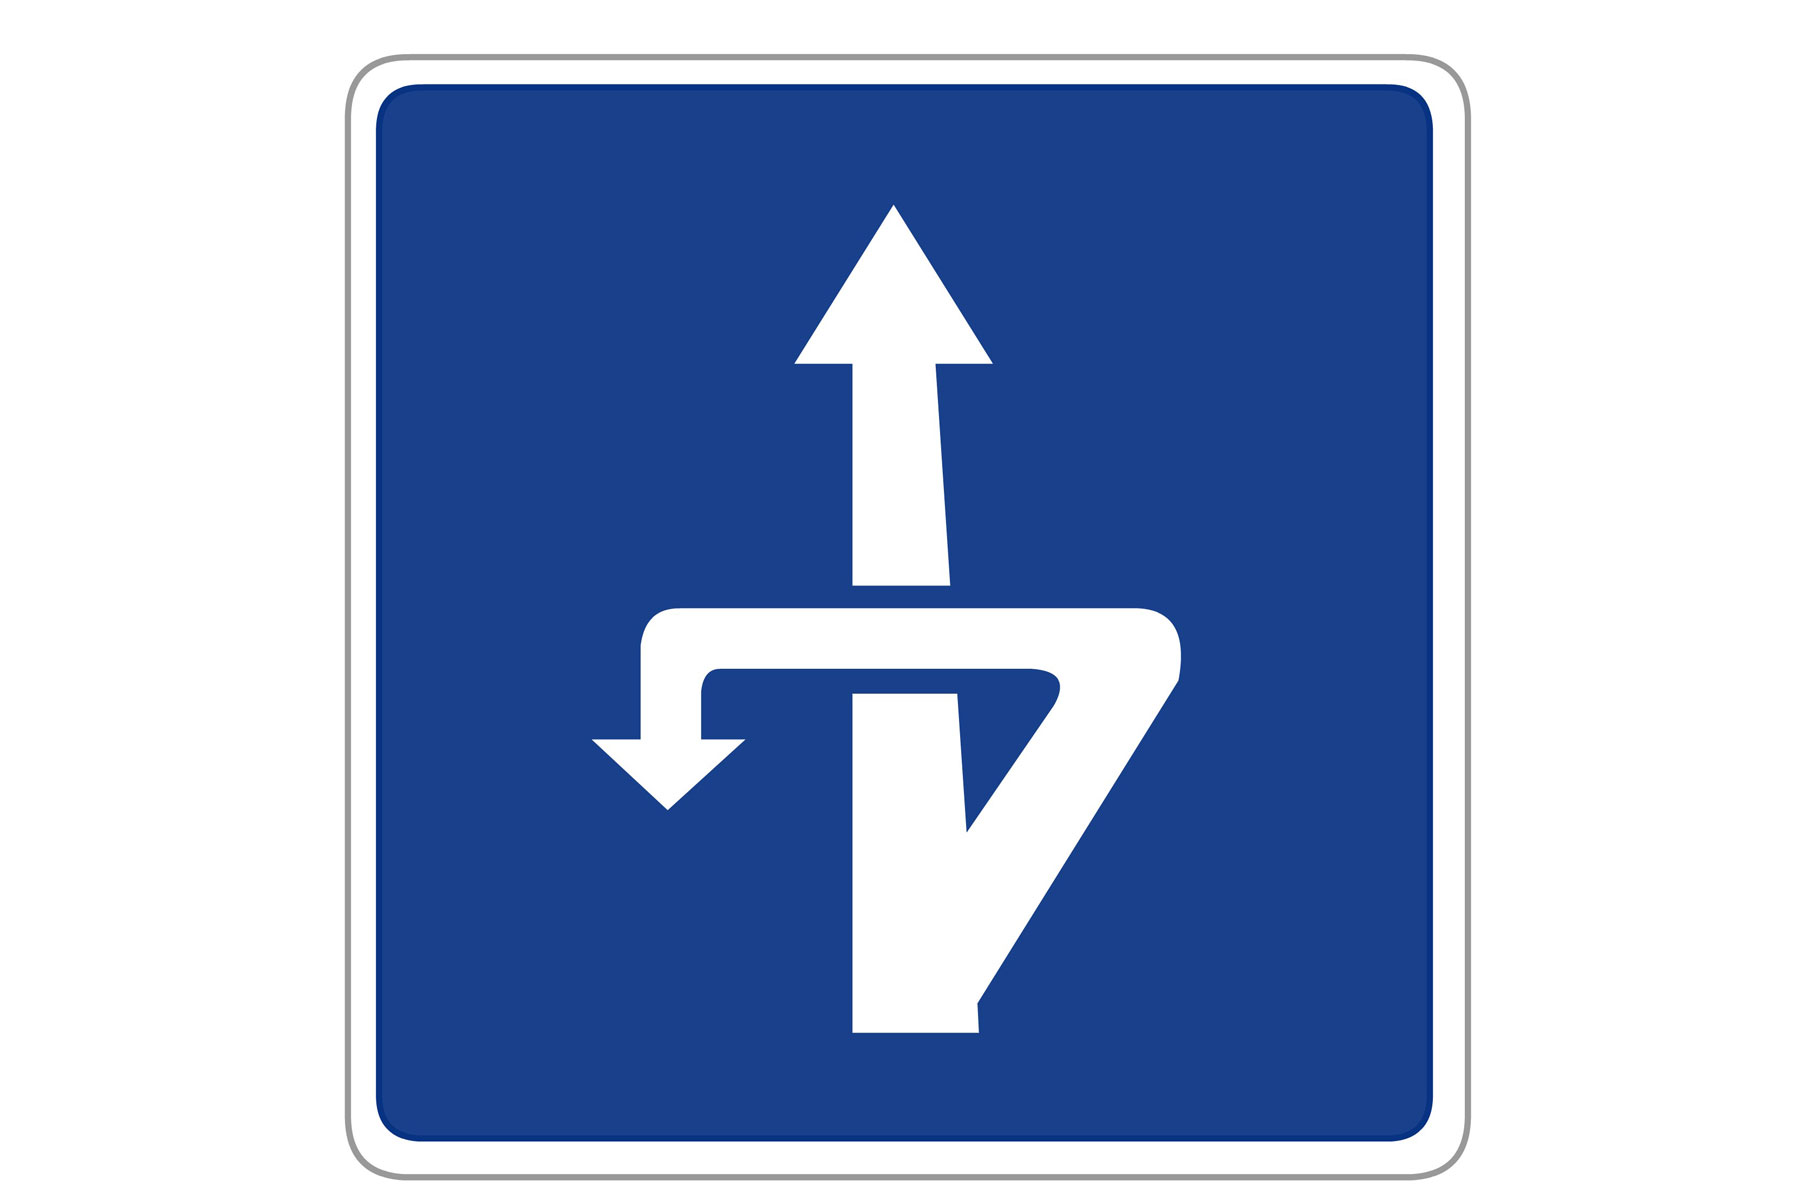 Indirect left turn Spain